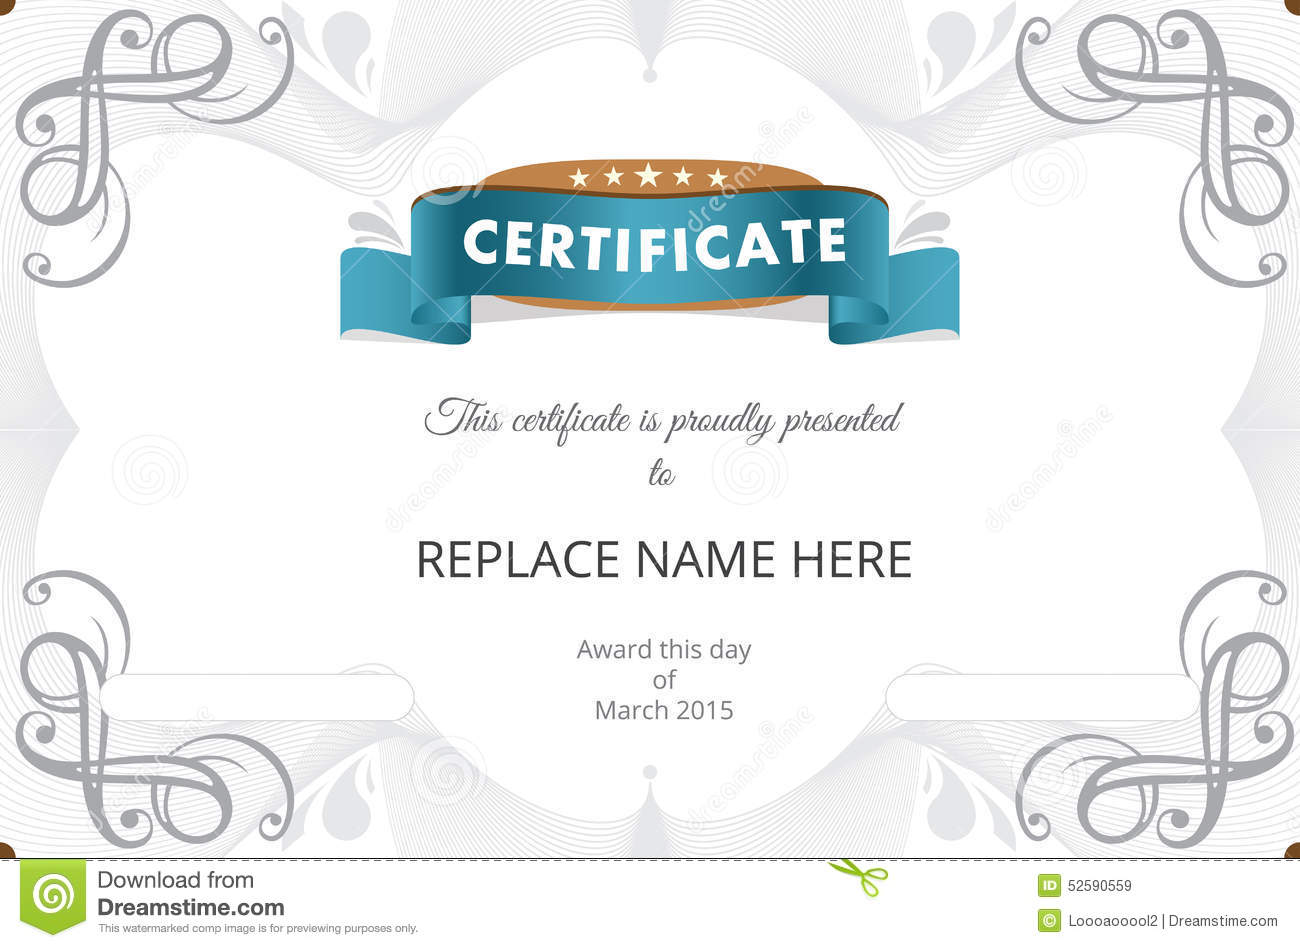 How to design a certificate template adobe illustrator mandegarfo how to design a certificate template adobe illustrator yelopaper Images